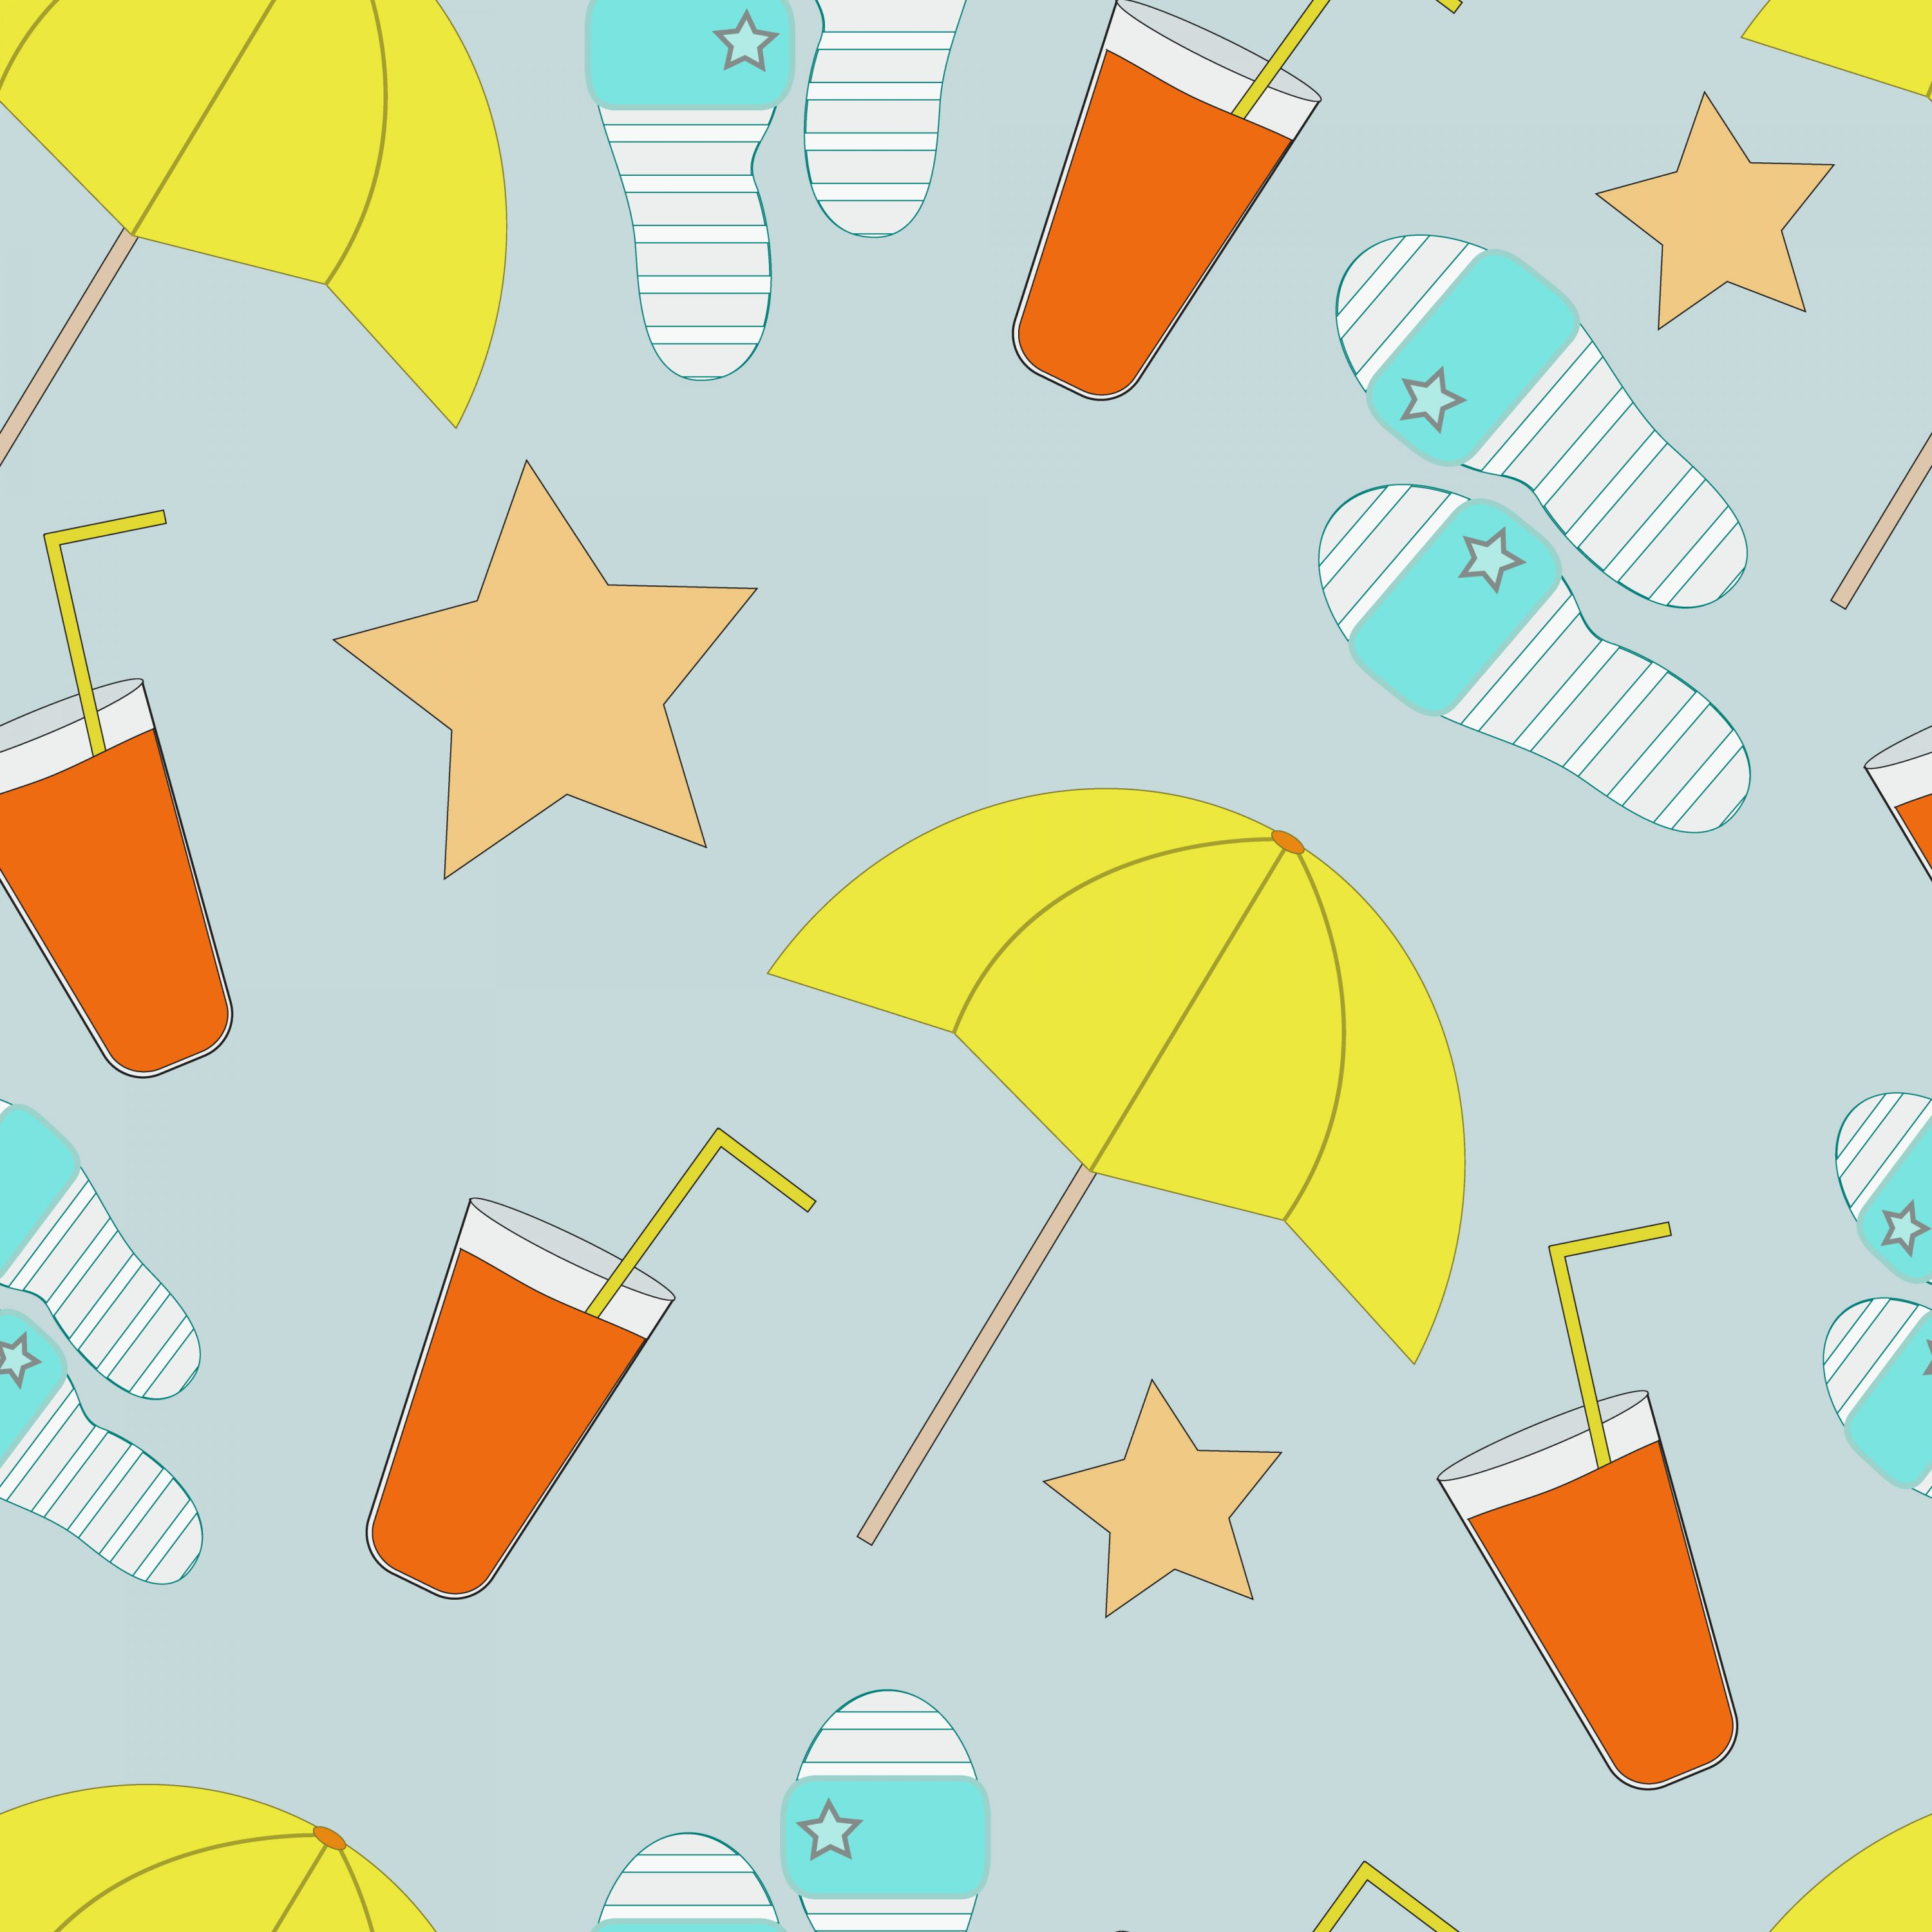 A vibrant image with umbrellas and cocktails that creates a summer mood.